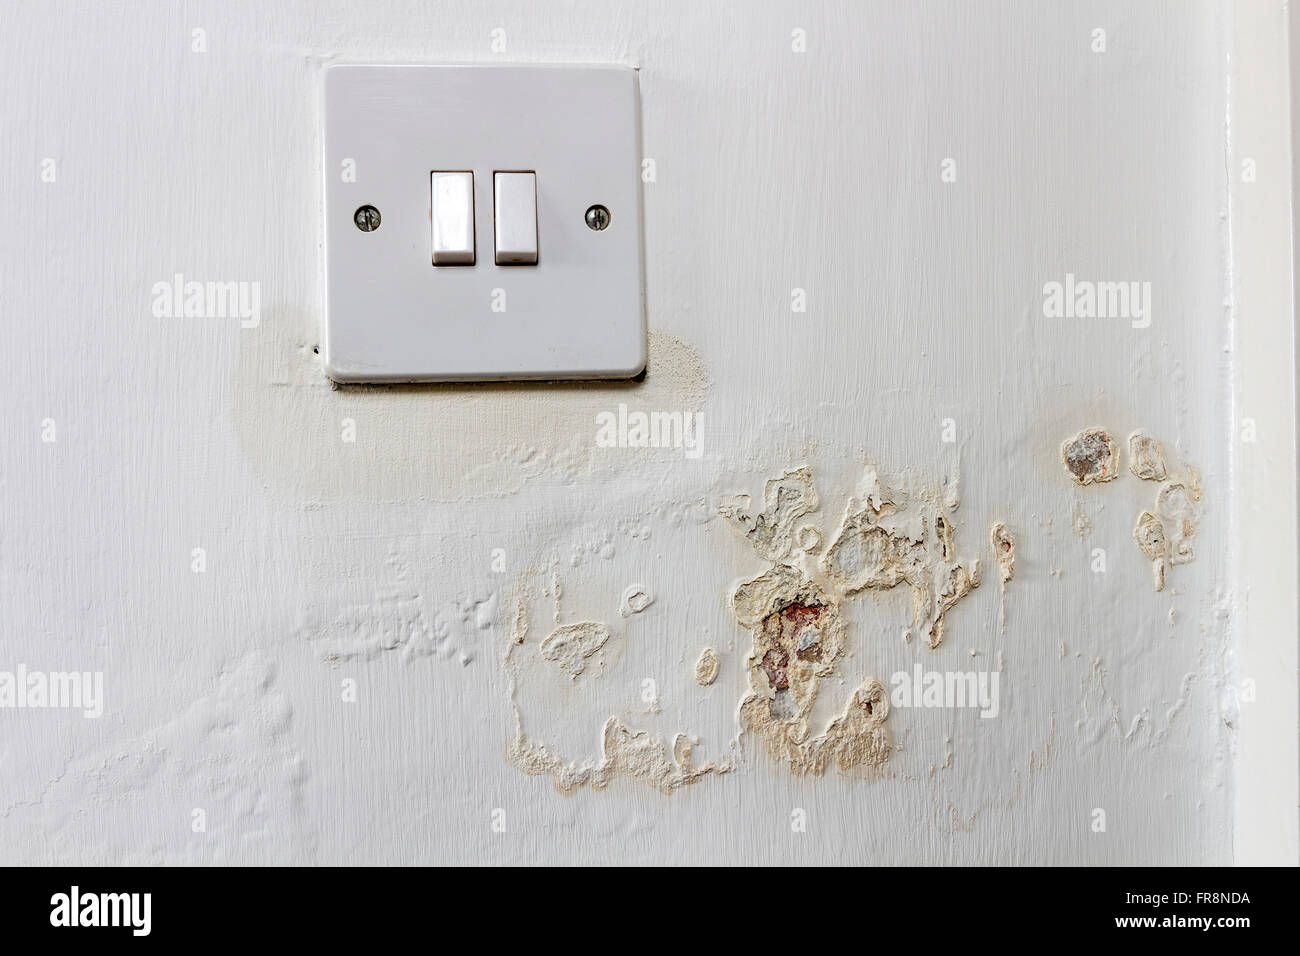 Damp Leaching Out of a Wall and Around a Light Switch in a Rented ...